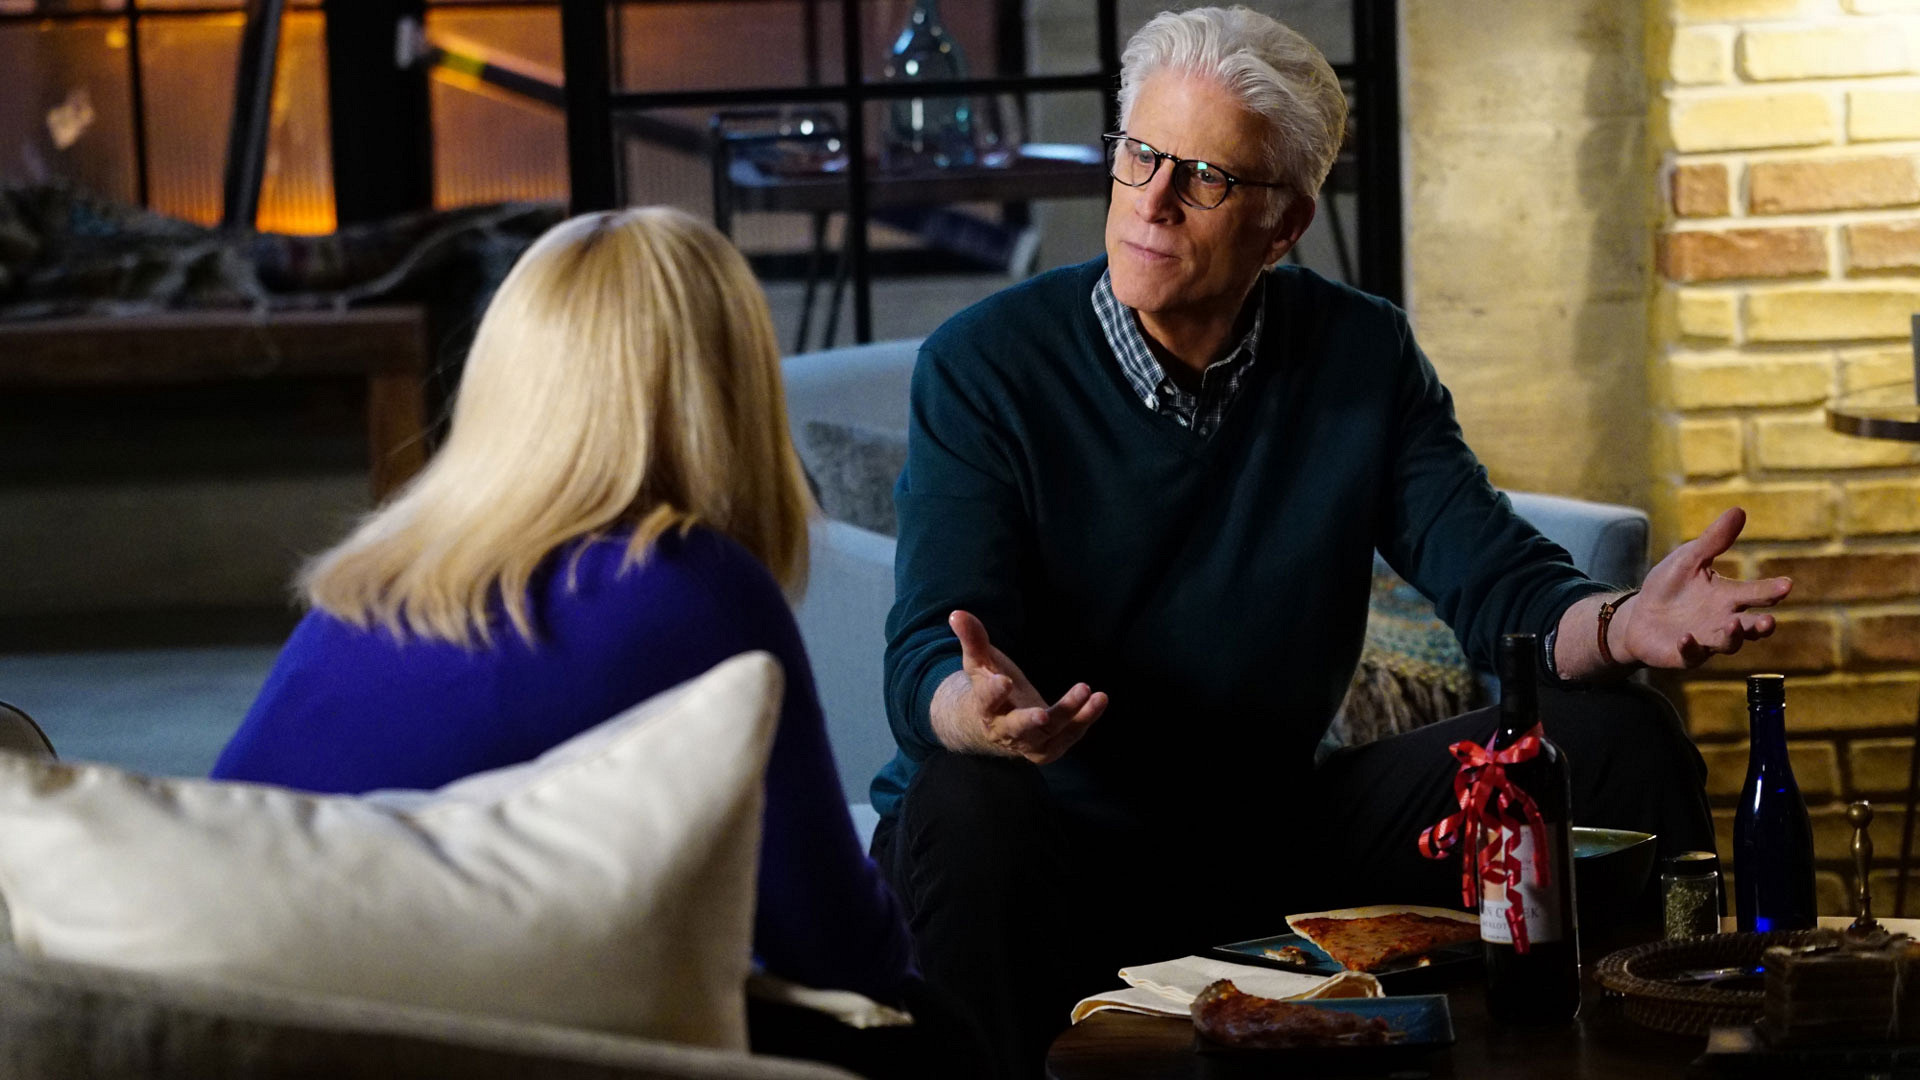 Patricia Arquette as Dr. Avery Ryan and Ted Danson as D.B. Russell